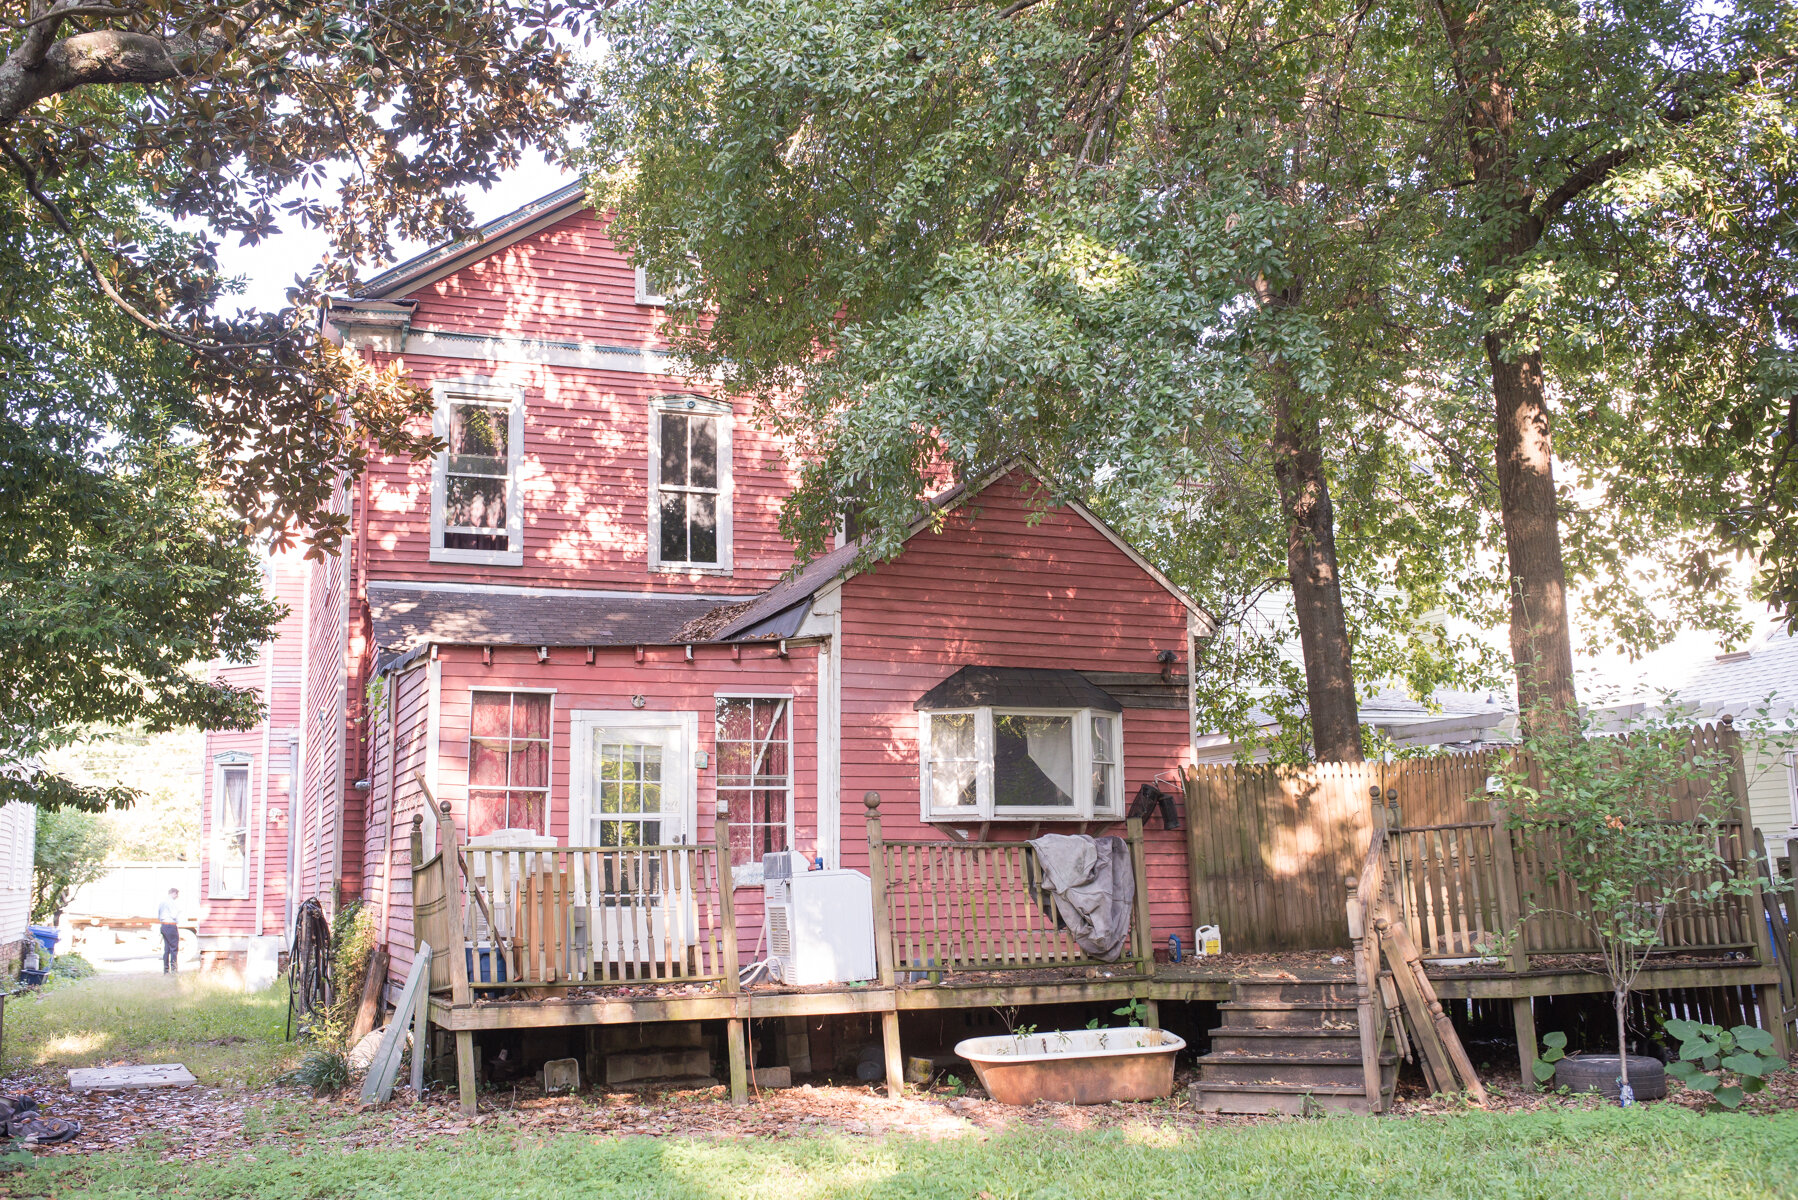 This is the back of the house. The porch has already been removed, as well as the roof and siding of the addition.